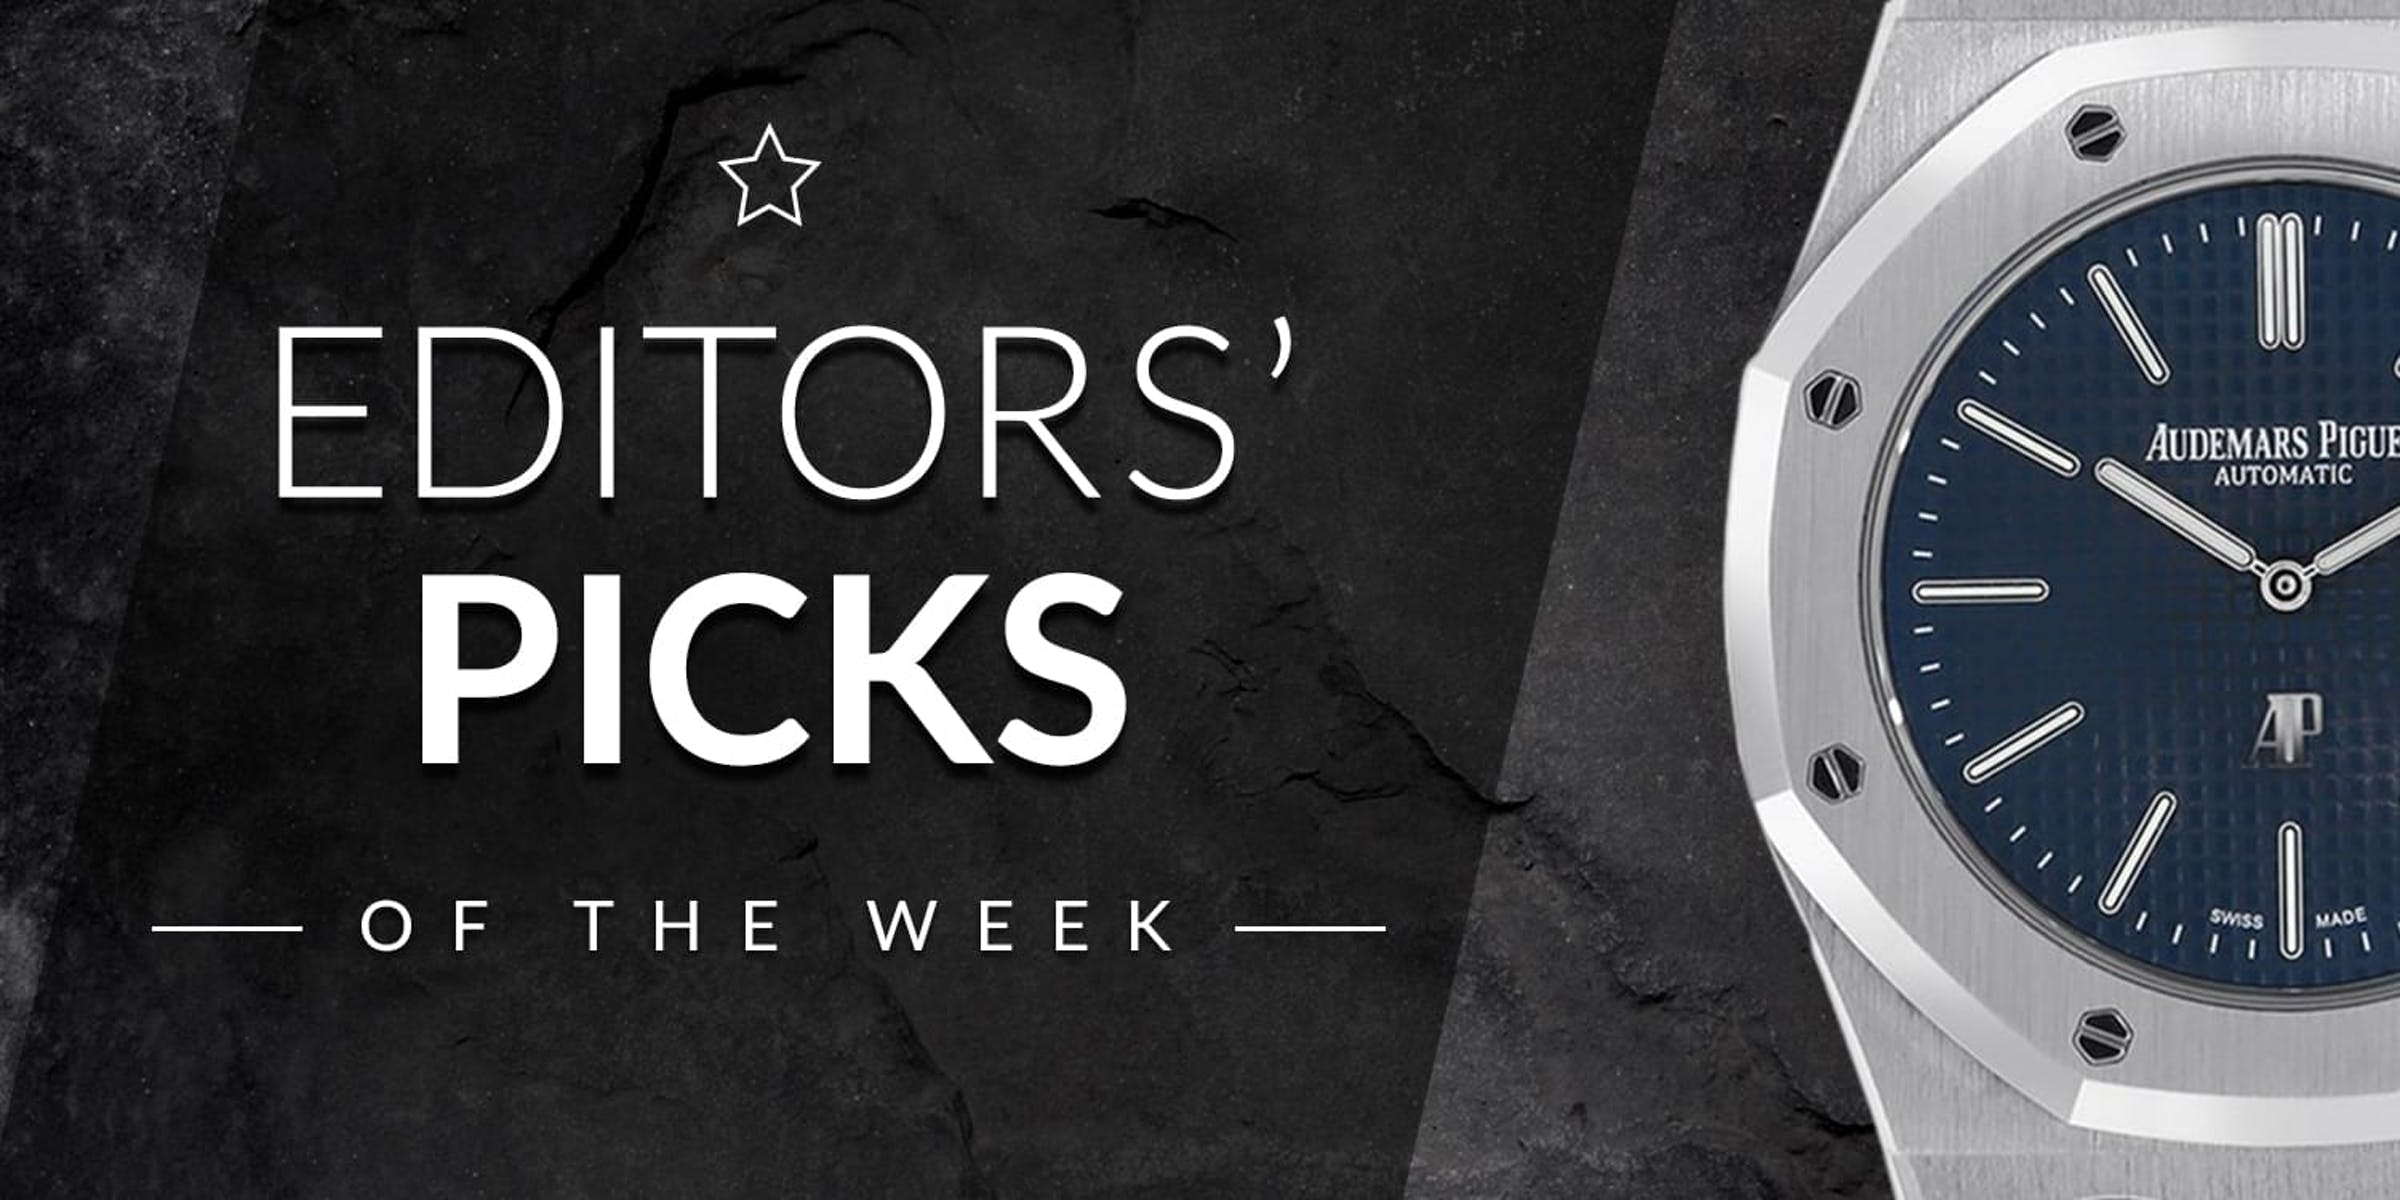 Editors' Picks of the Week: IWC, Audemars Piguet, and Omega